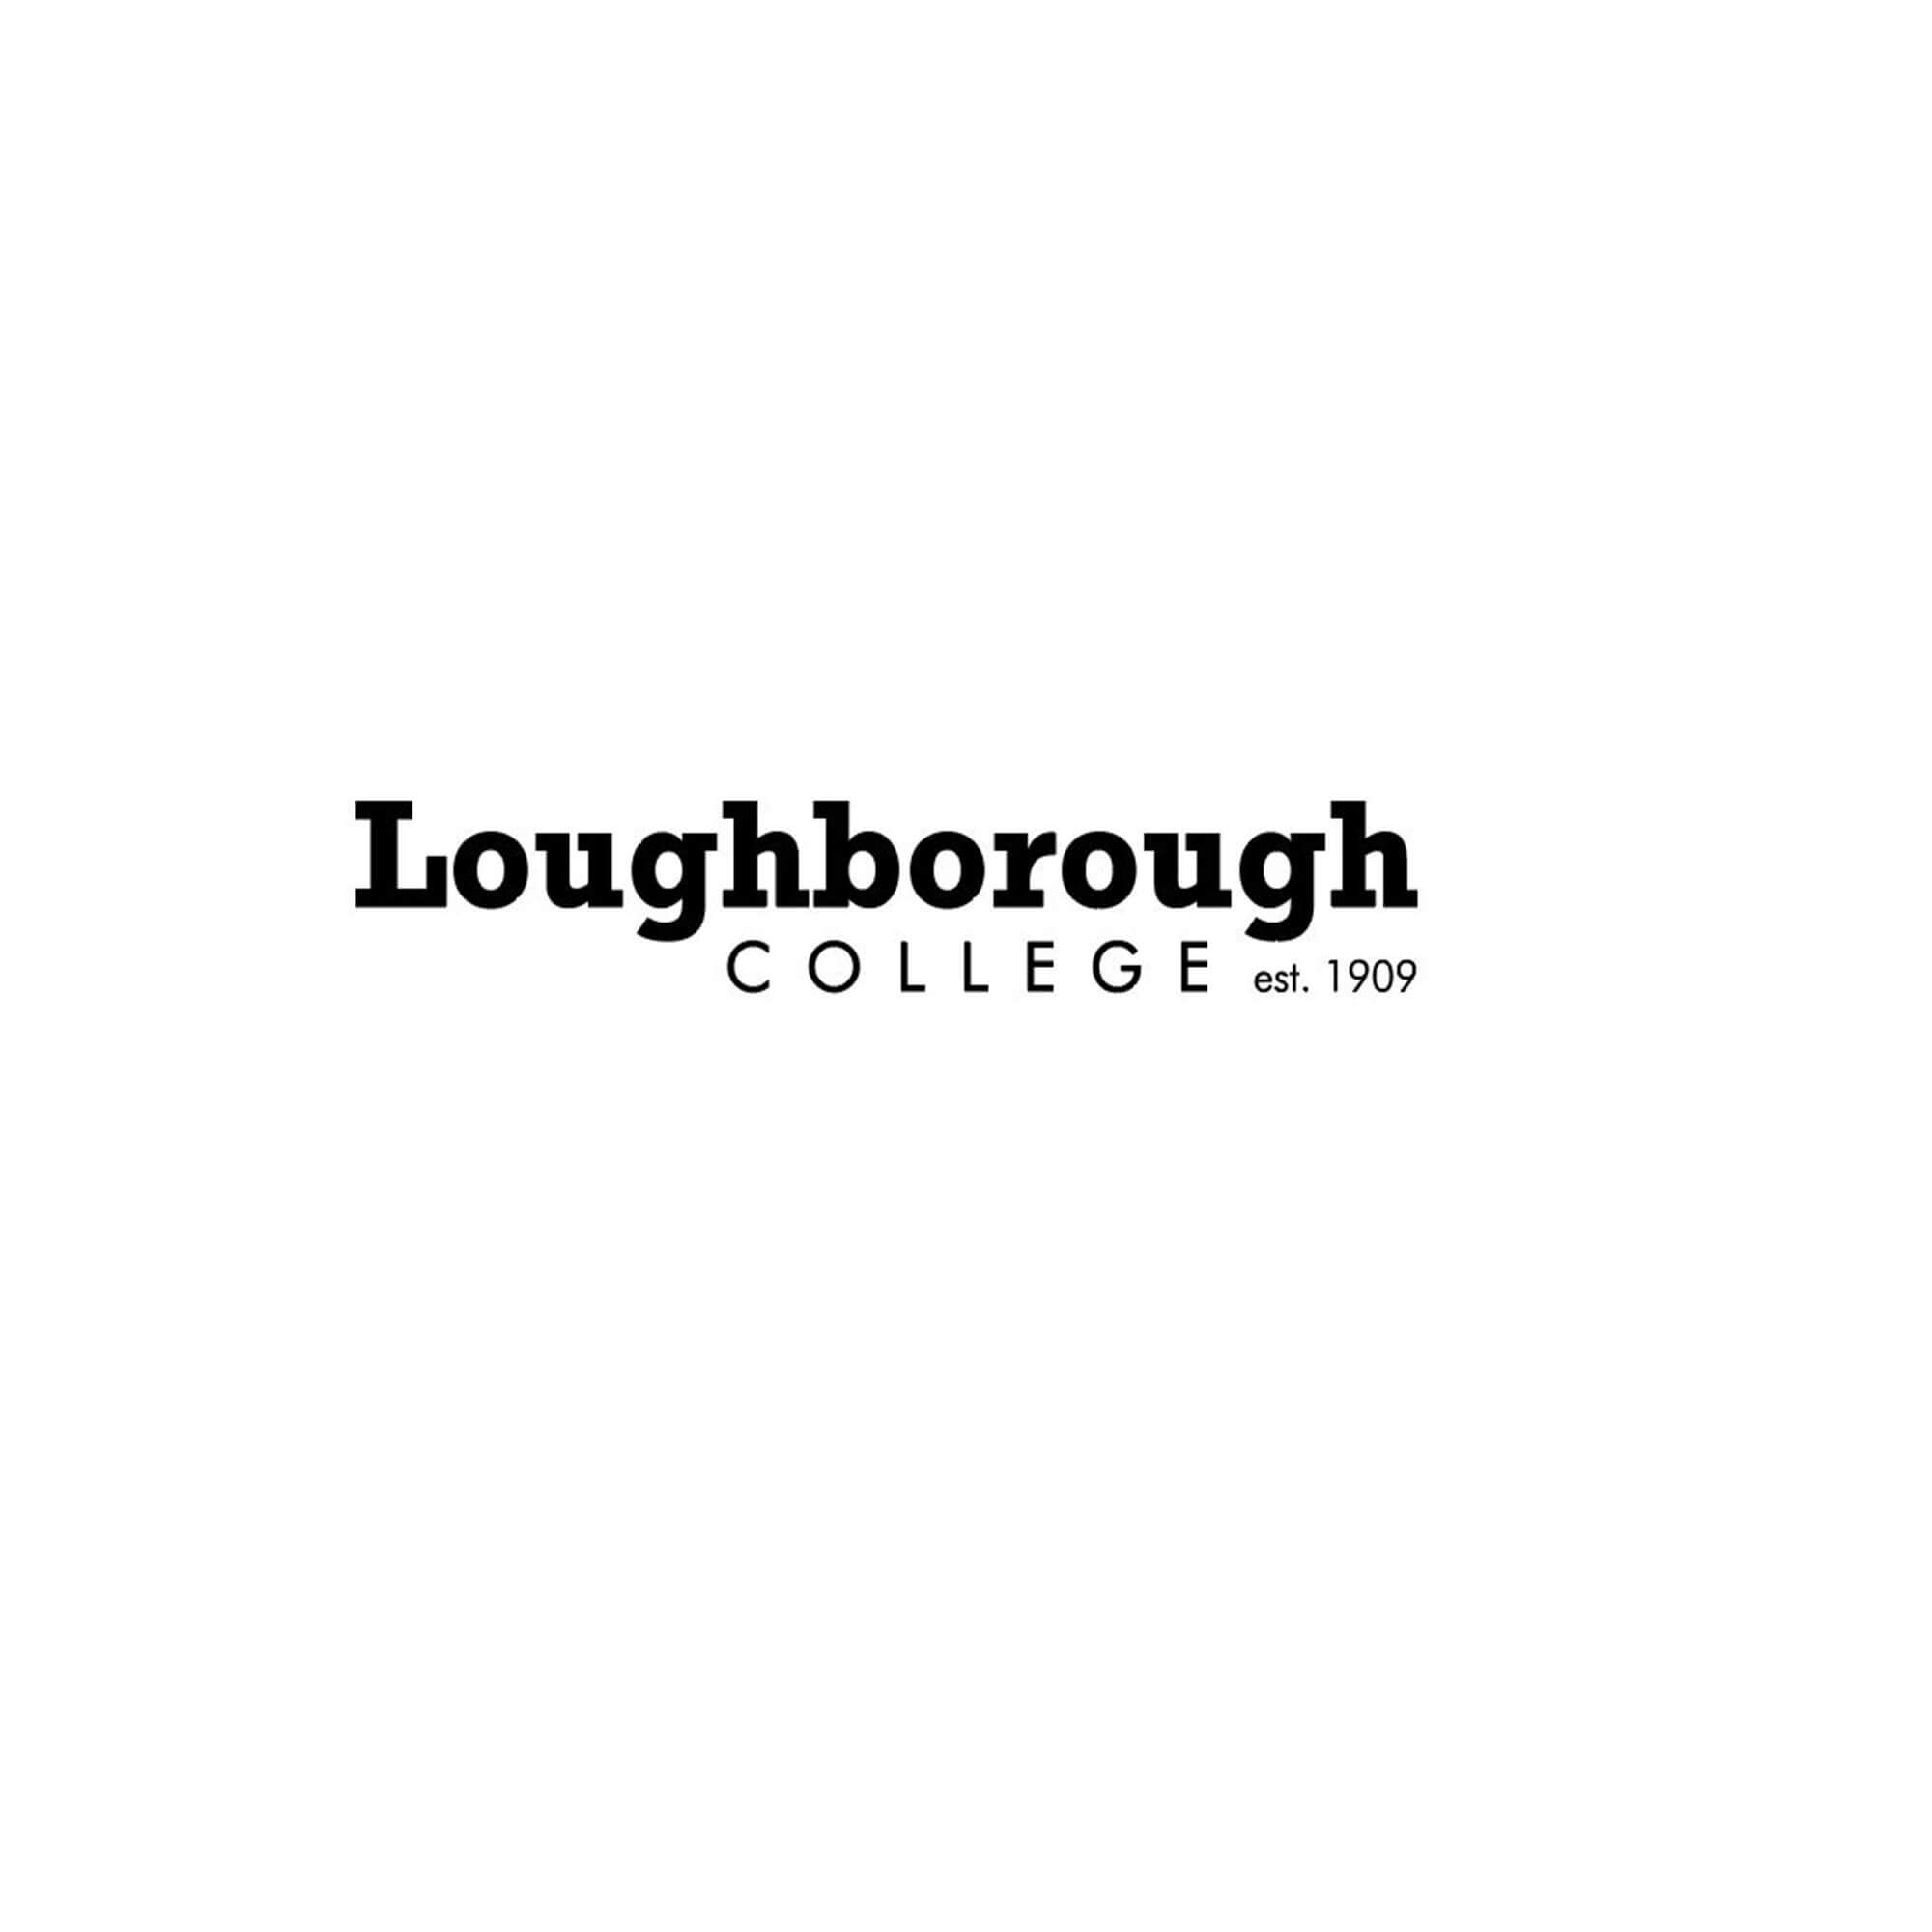 Loughborough logo - black text